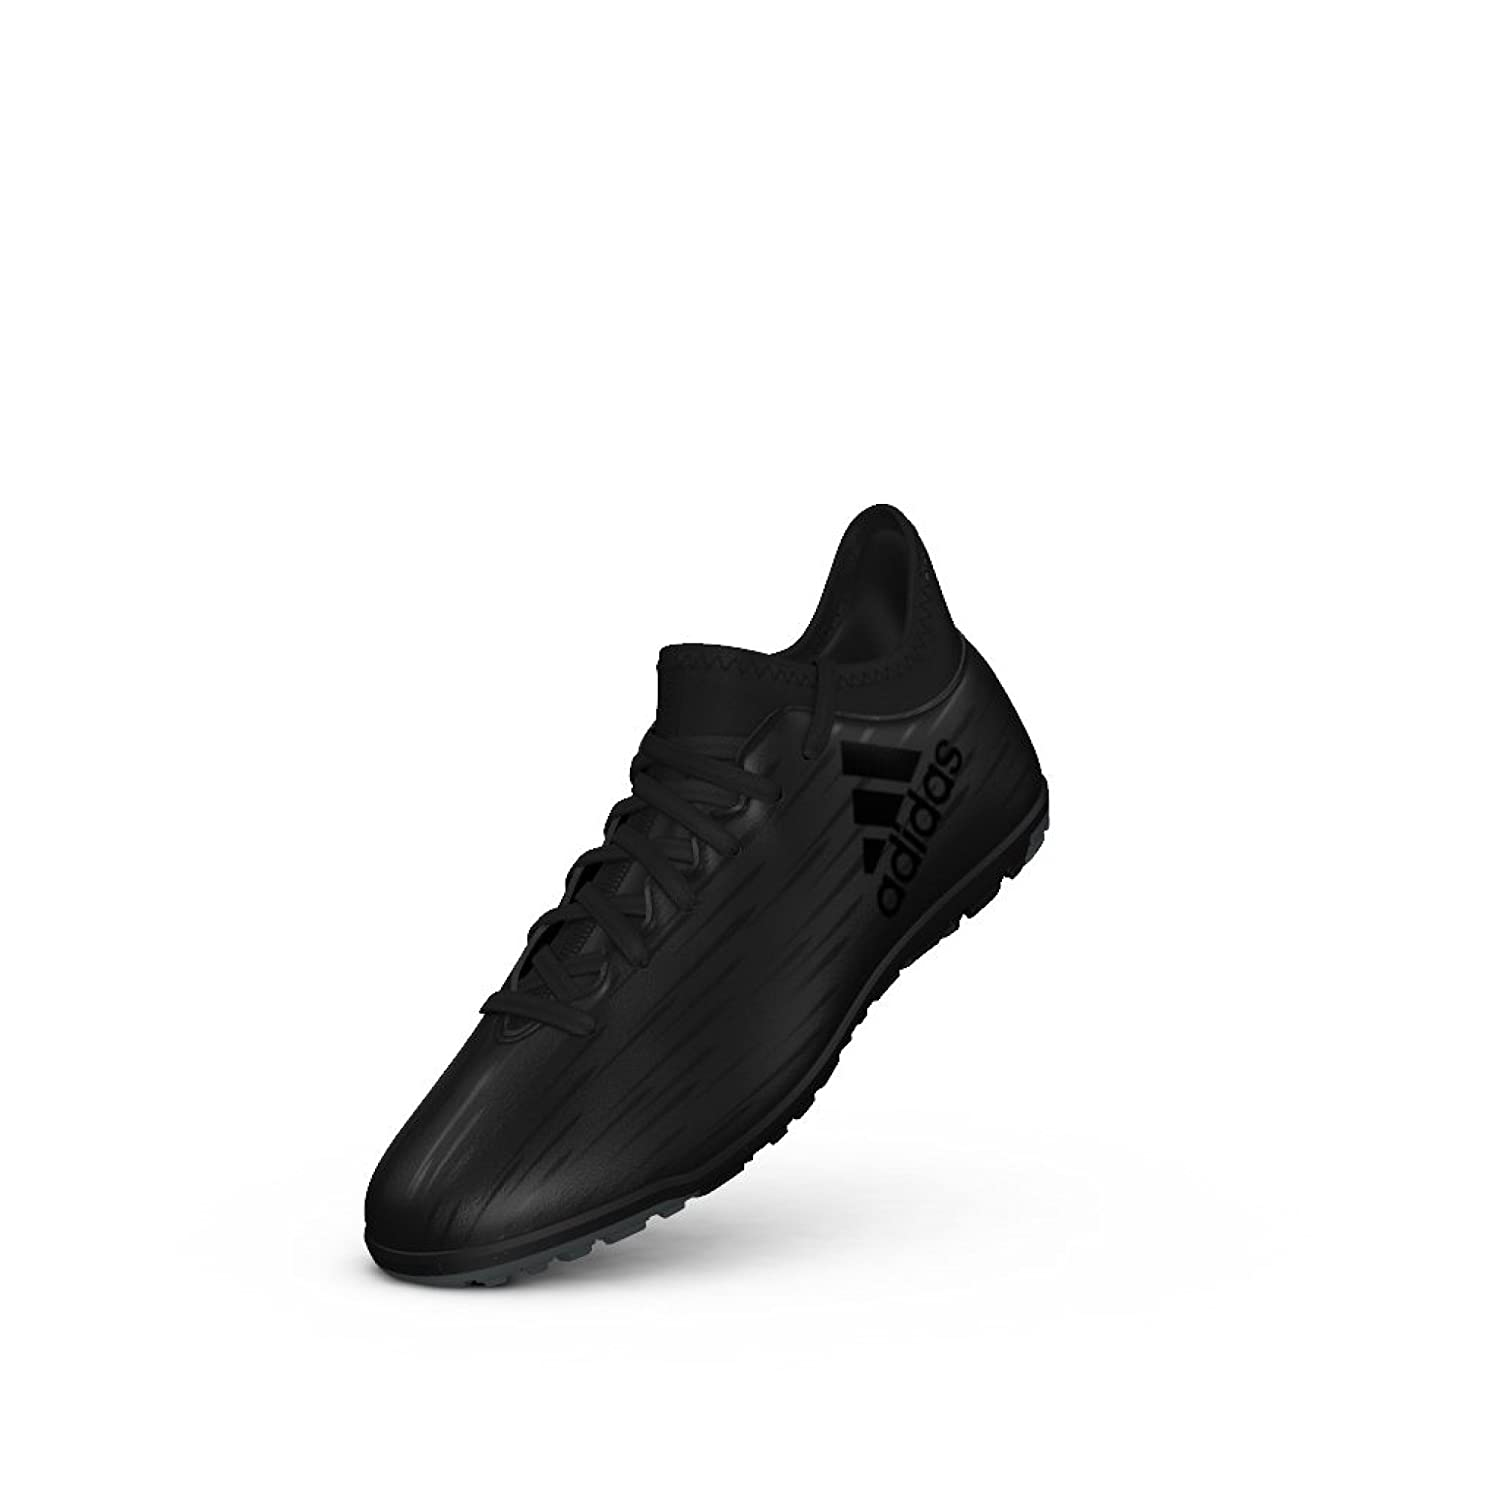 newest d61e5 2a6be Amazon.com  adidas X16.3 Tf J Black Indoor Soccer Shoes 2  Sports   Outdoors